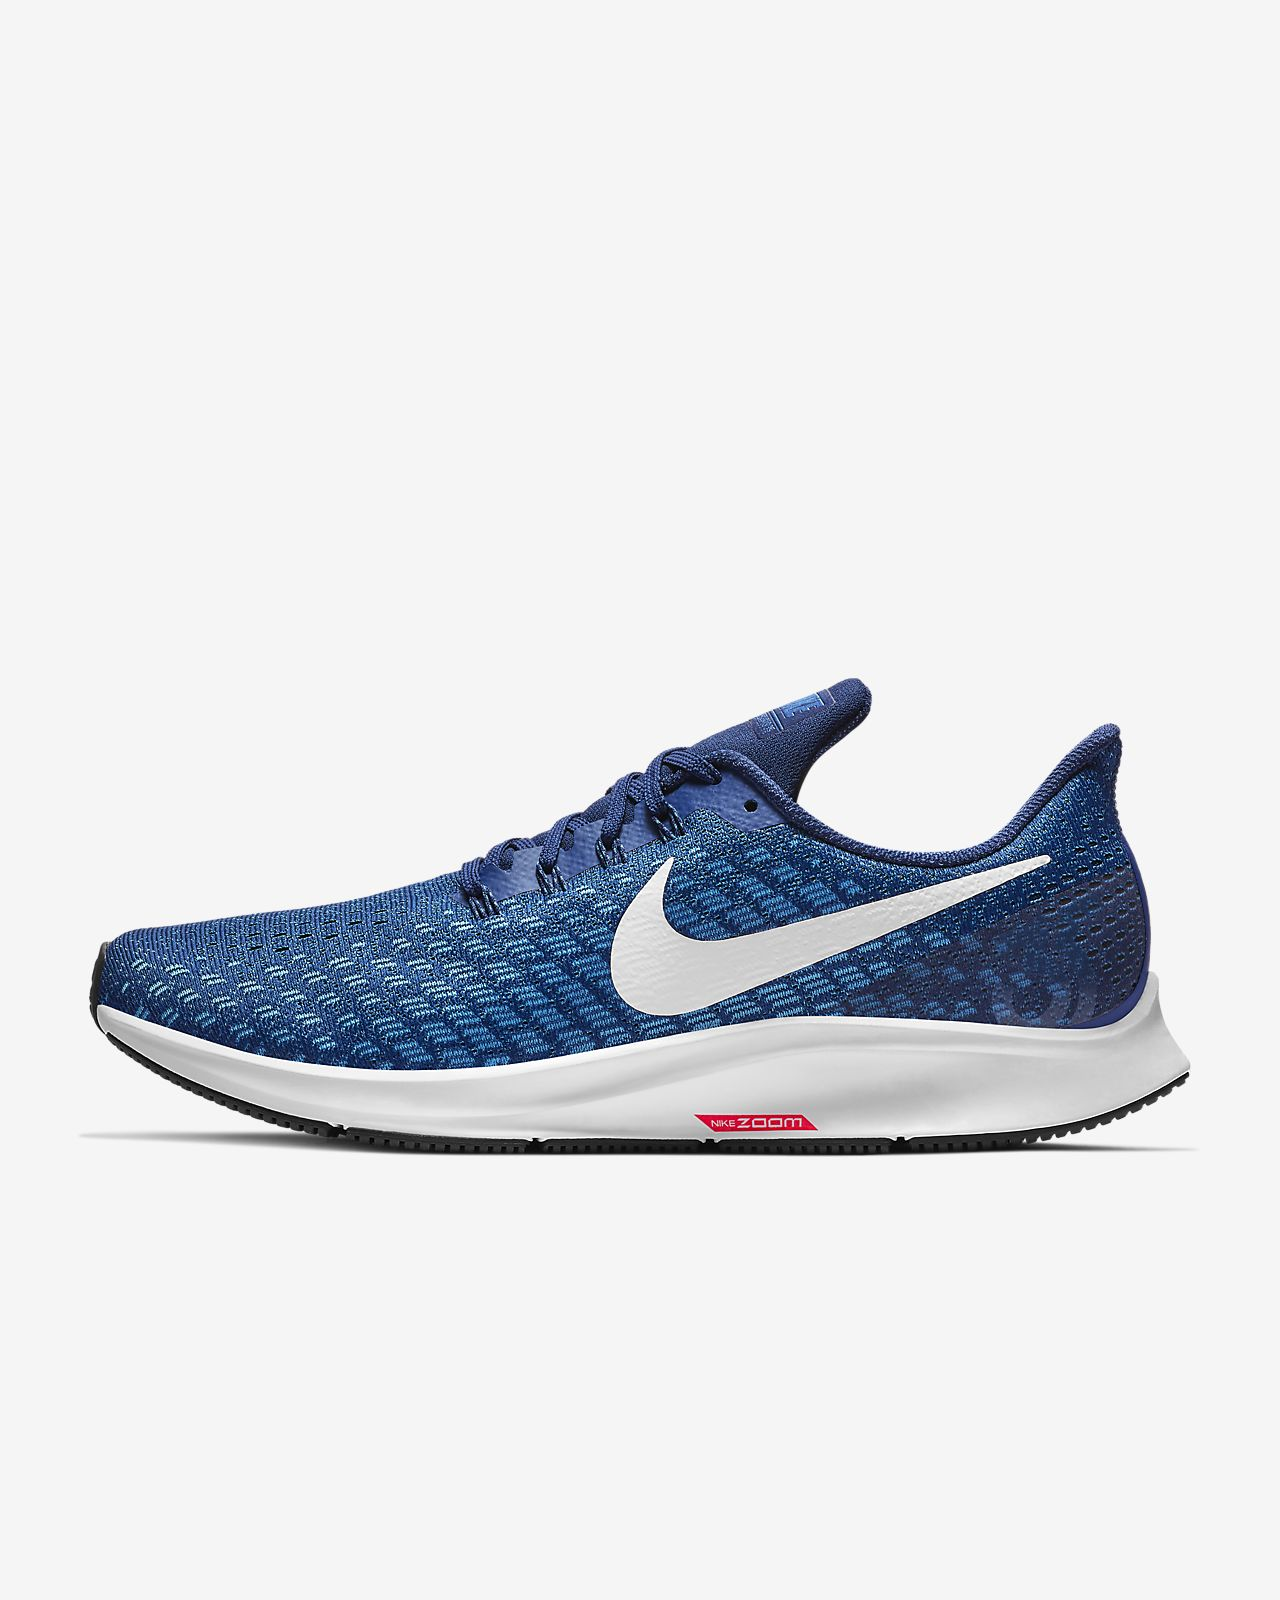 efb455a947a Nike Air Zoom Pegasus 35 Men s Running Shoe. Nike.com CA